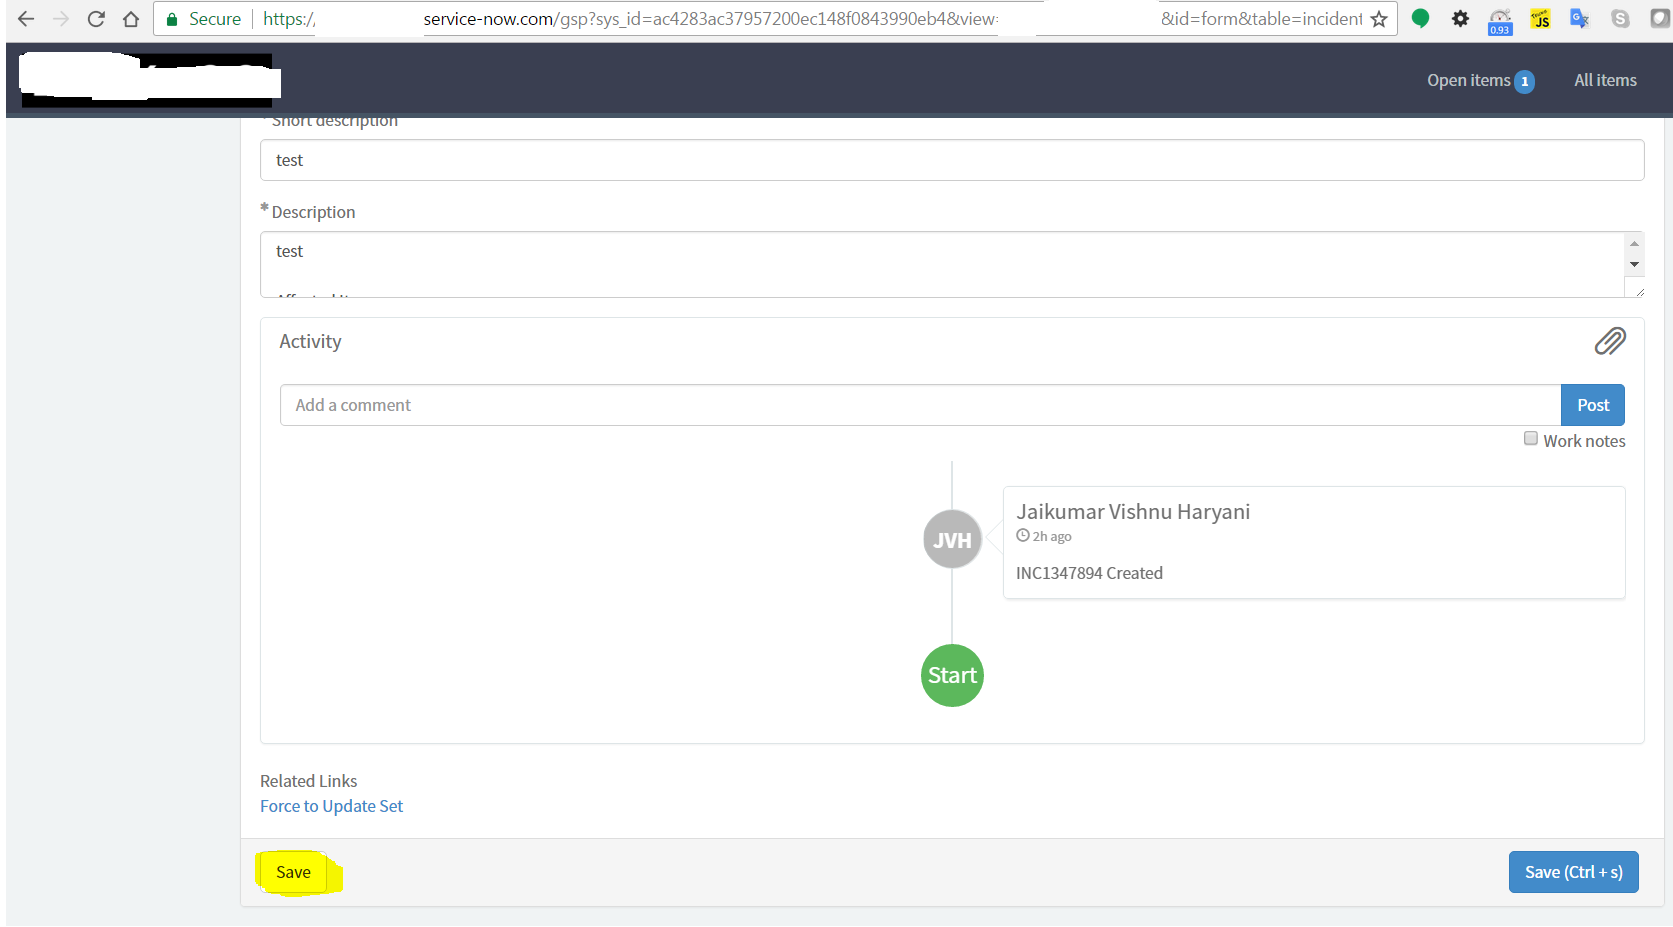 How to hide Save button in Service Portal form view - Now Platform